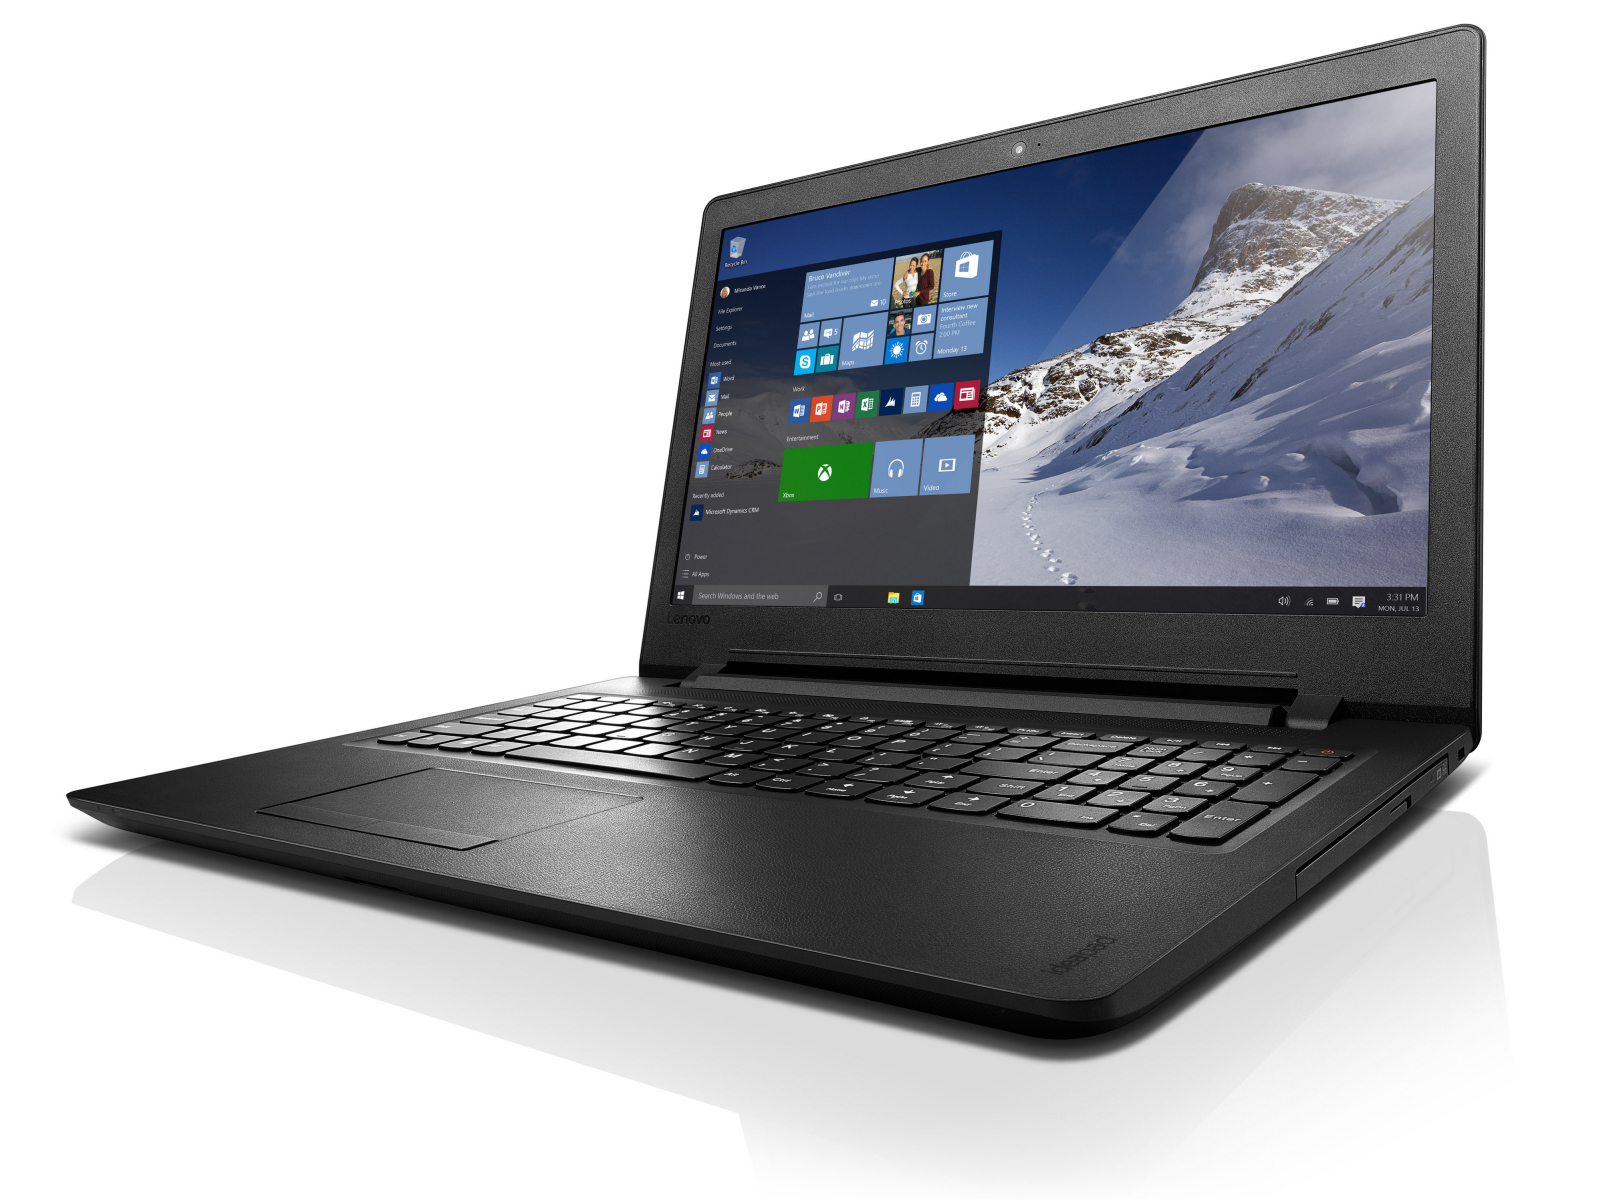 Lenovo IdeaPad 110-15ACL (A8-7410, HD) Laptop Review